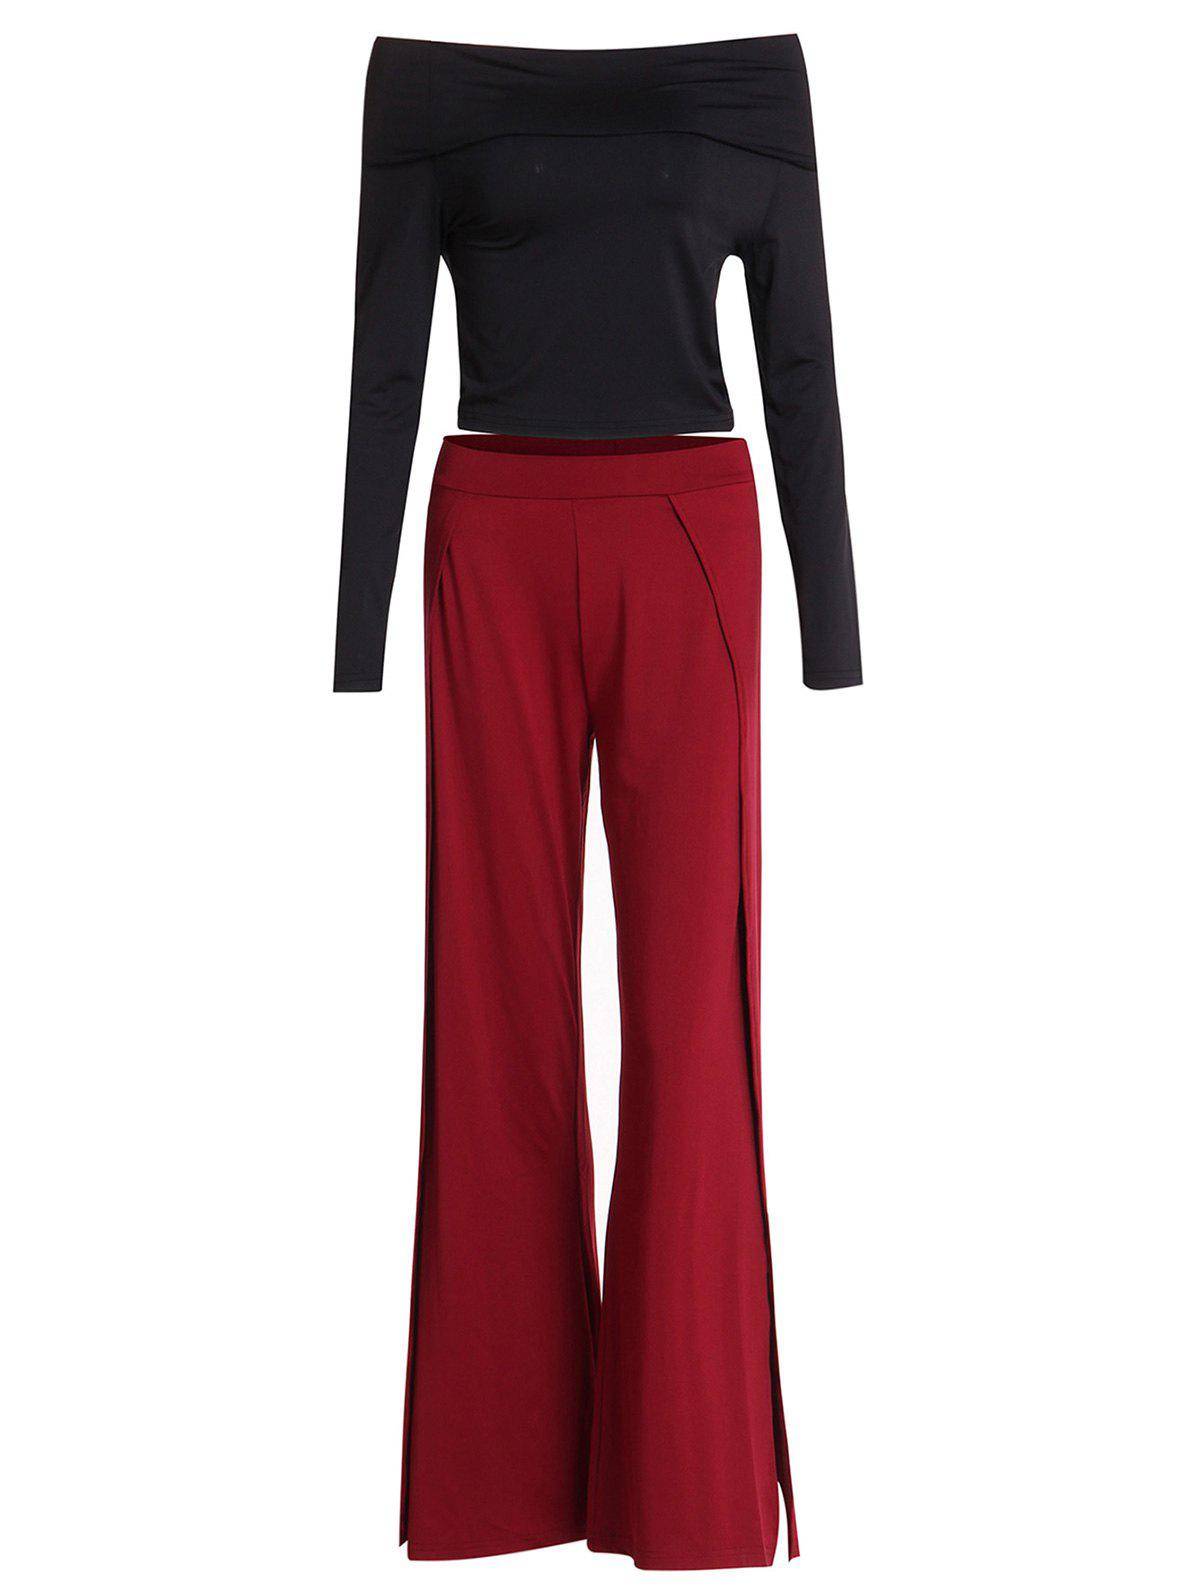 Chic Black Off-The-Shoulder Cropped T-Shirt and Slit Pants Twinset For Women